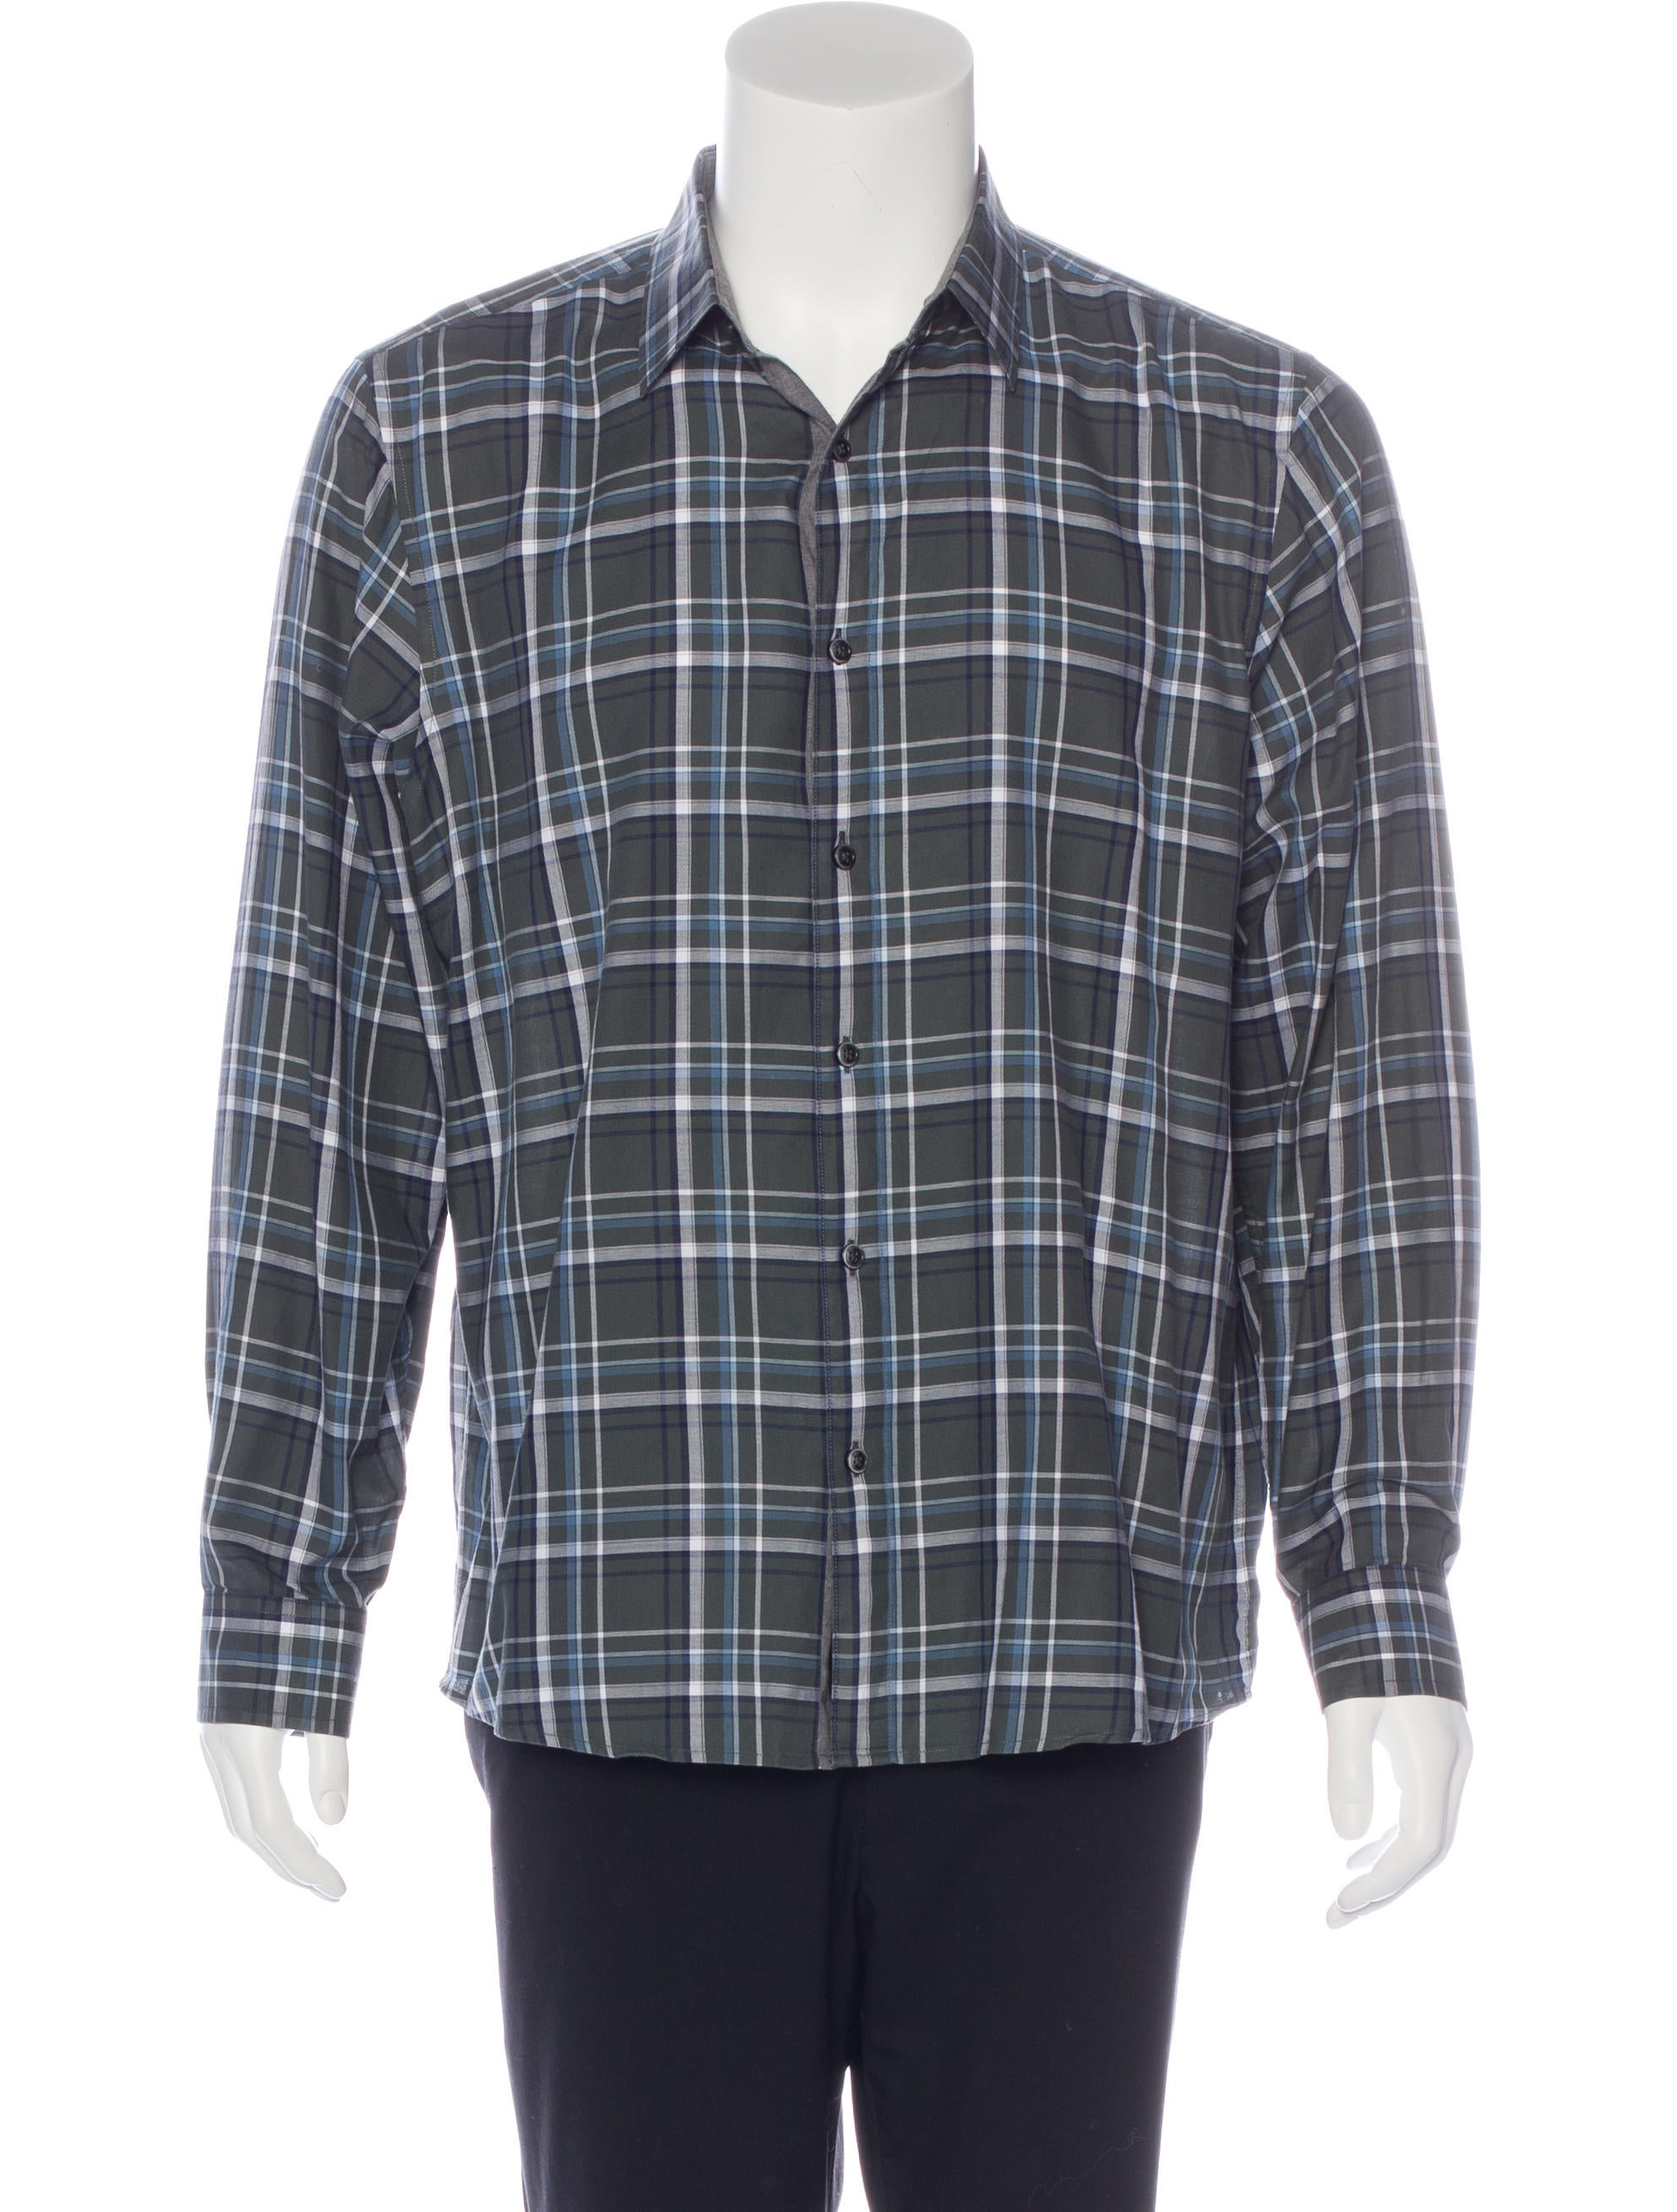 Michael Kors Plaid Long Sleeve Shirt Clothing Mic52802